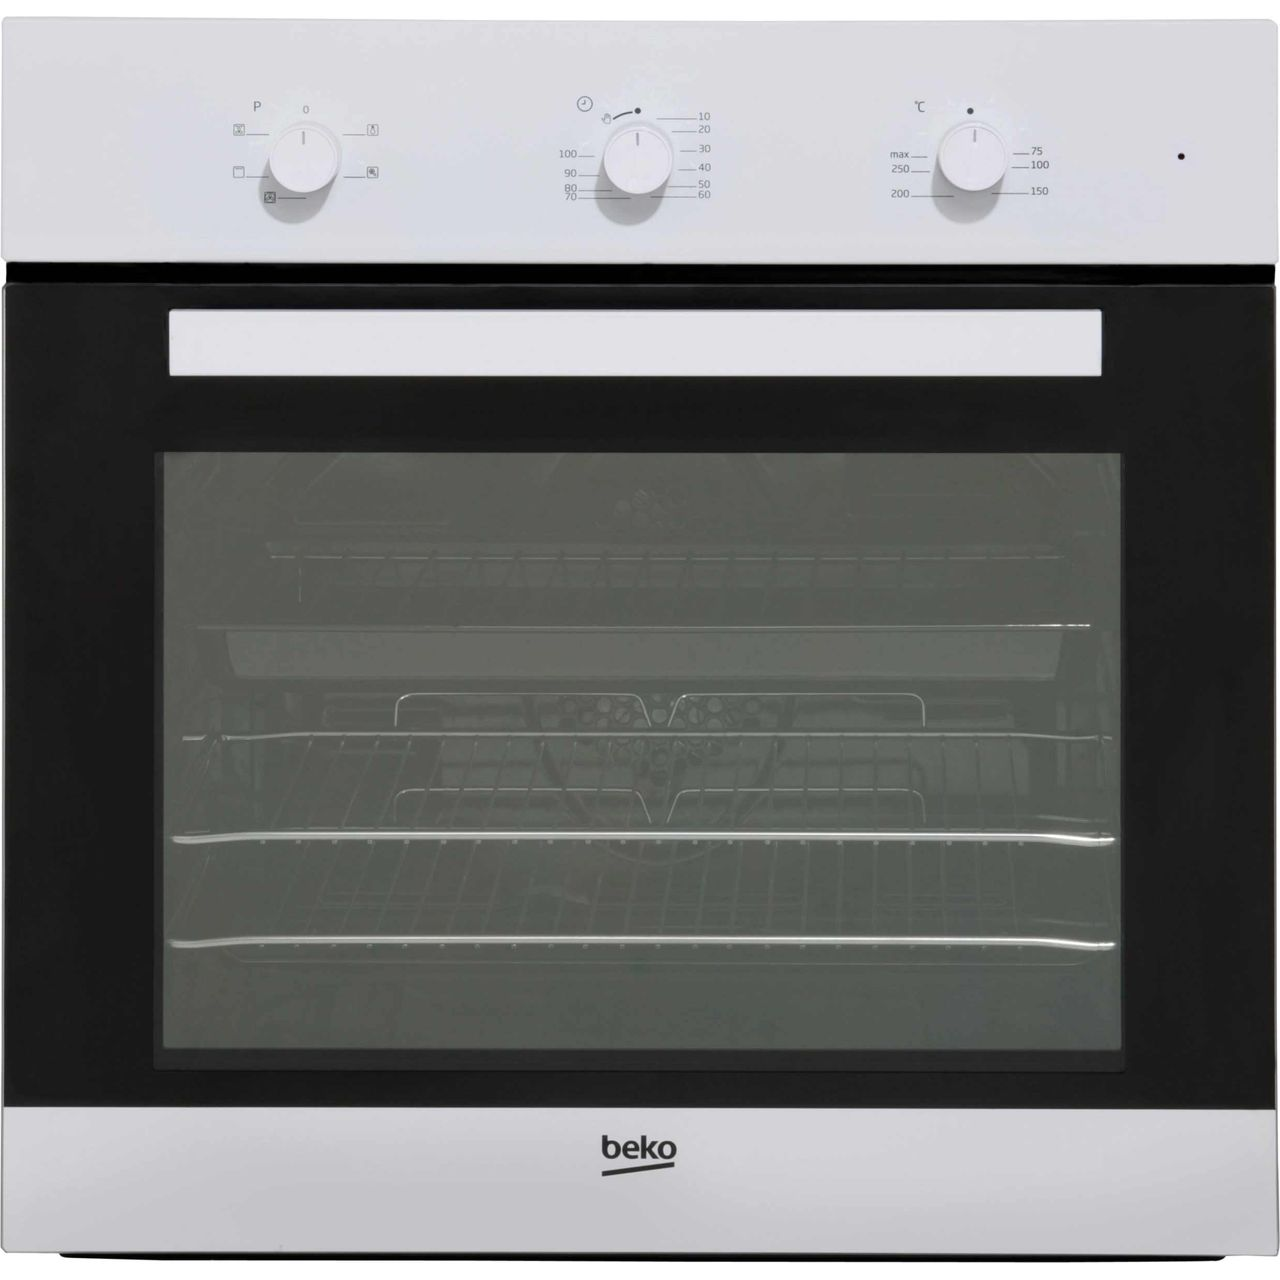 Beko EcoSmart BIF22100W Built In Electric Single Oven - White